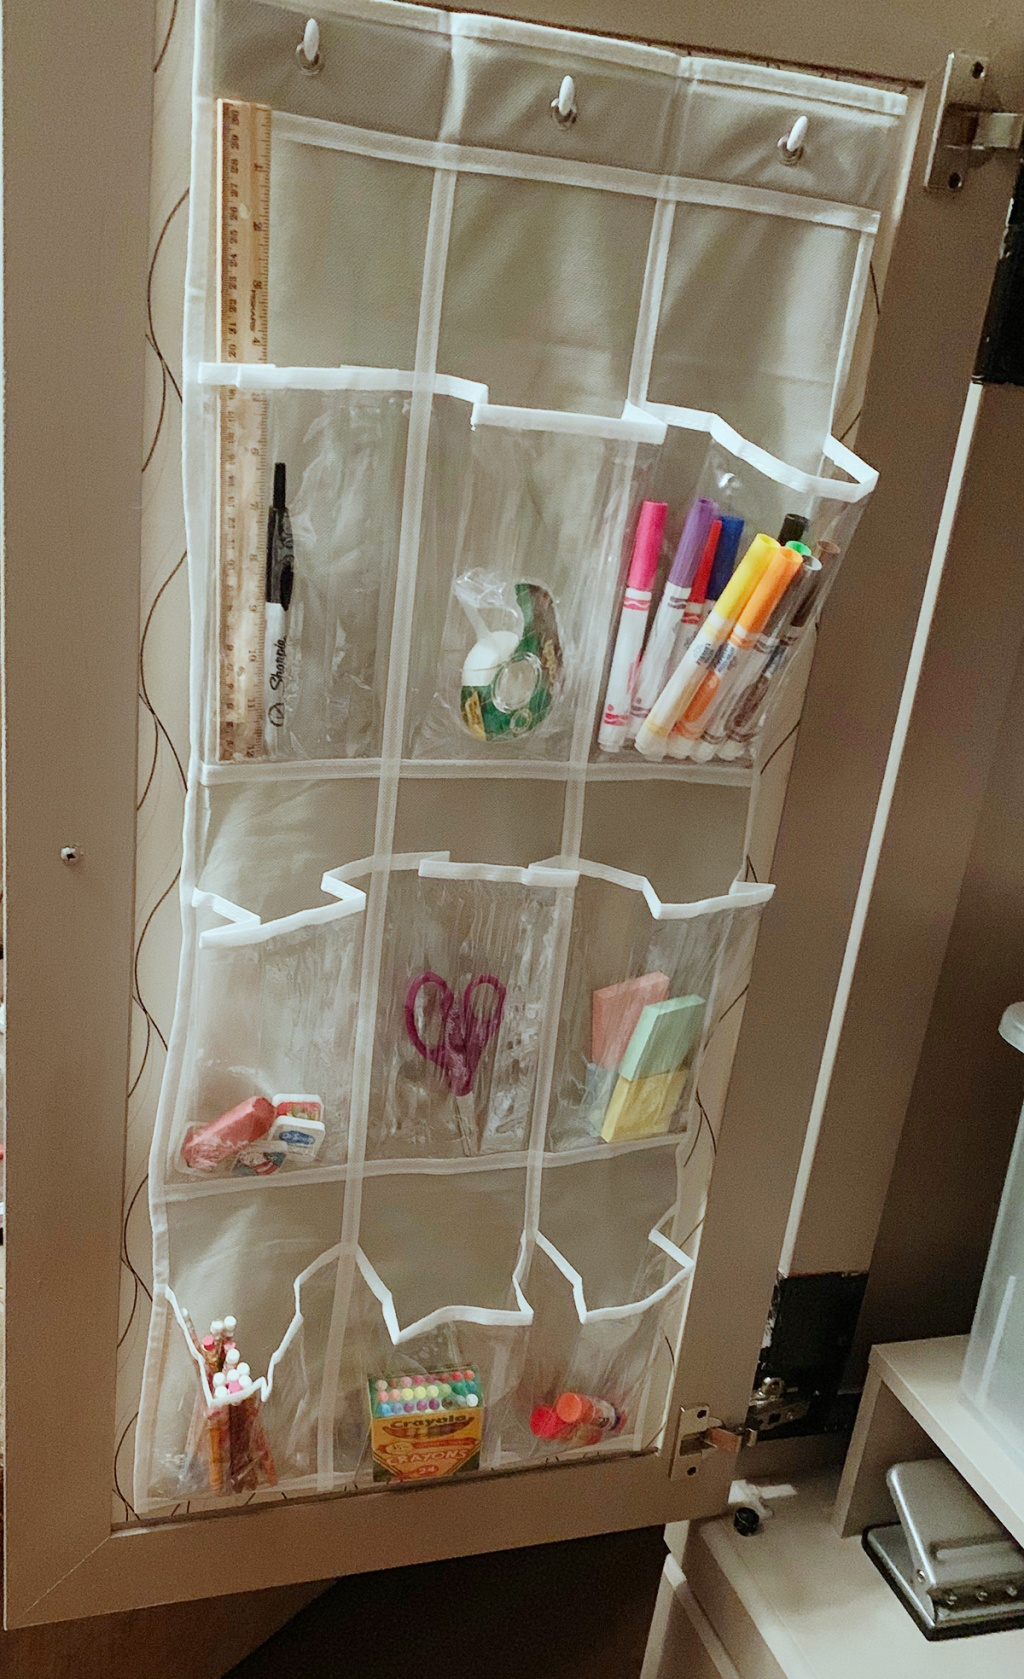 Over the door shoe hanger used for markers, pencils, and other supplies organization